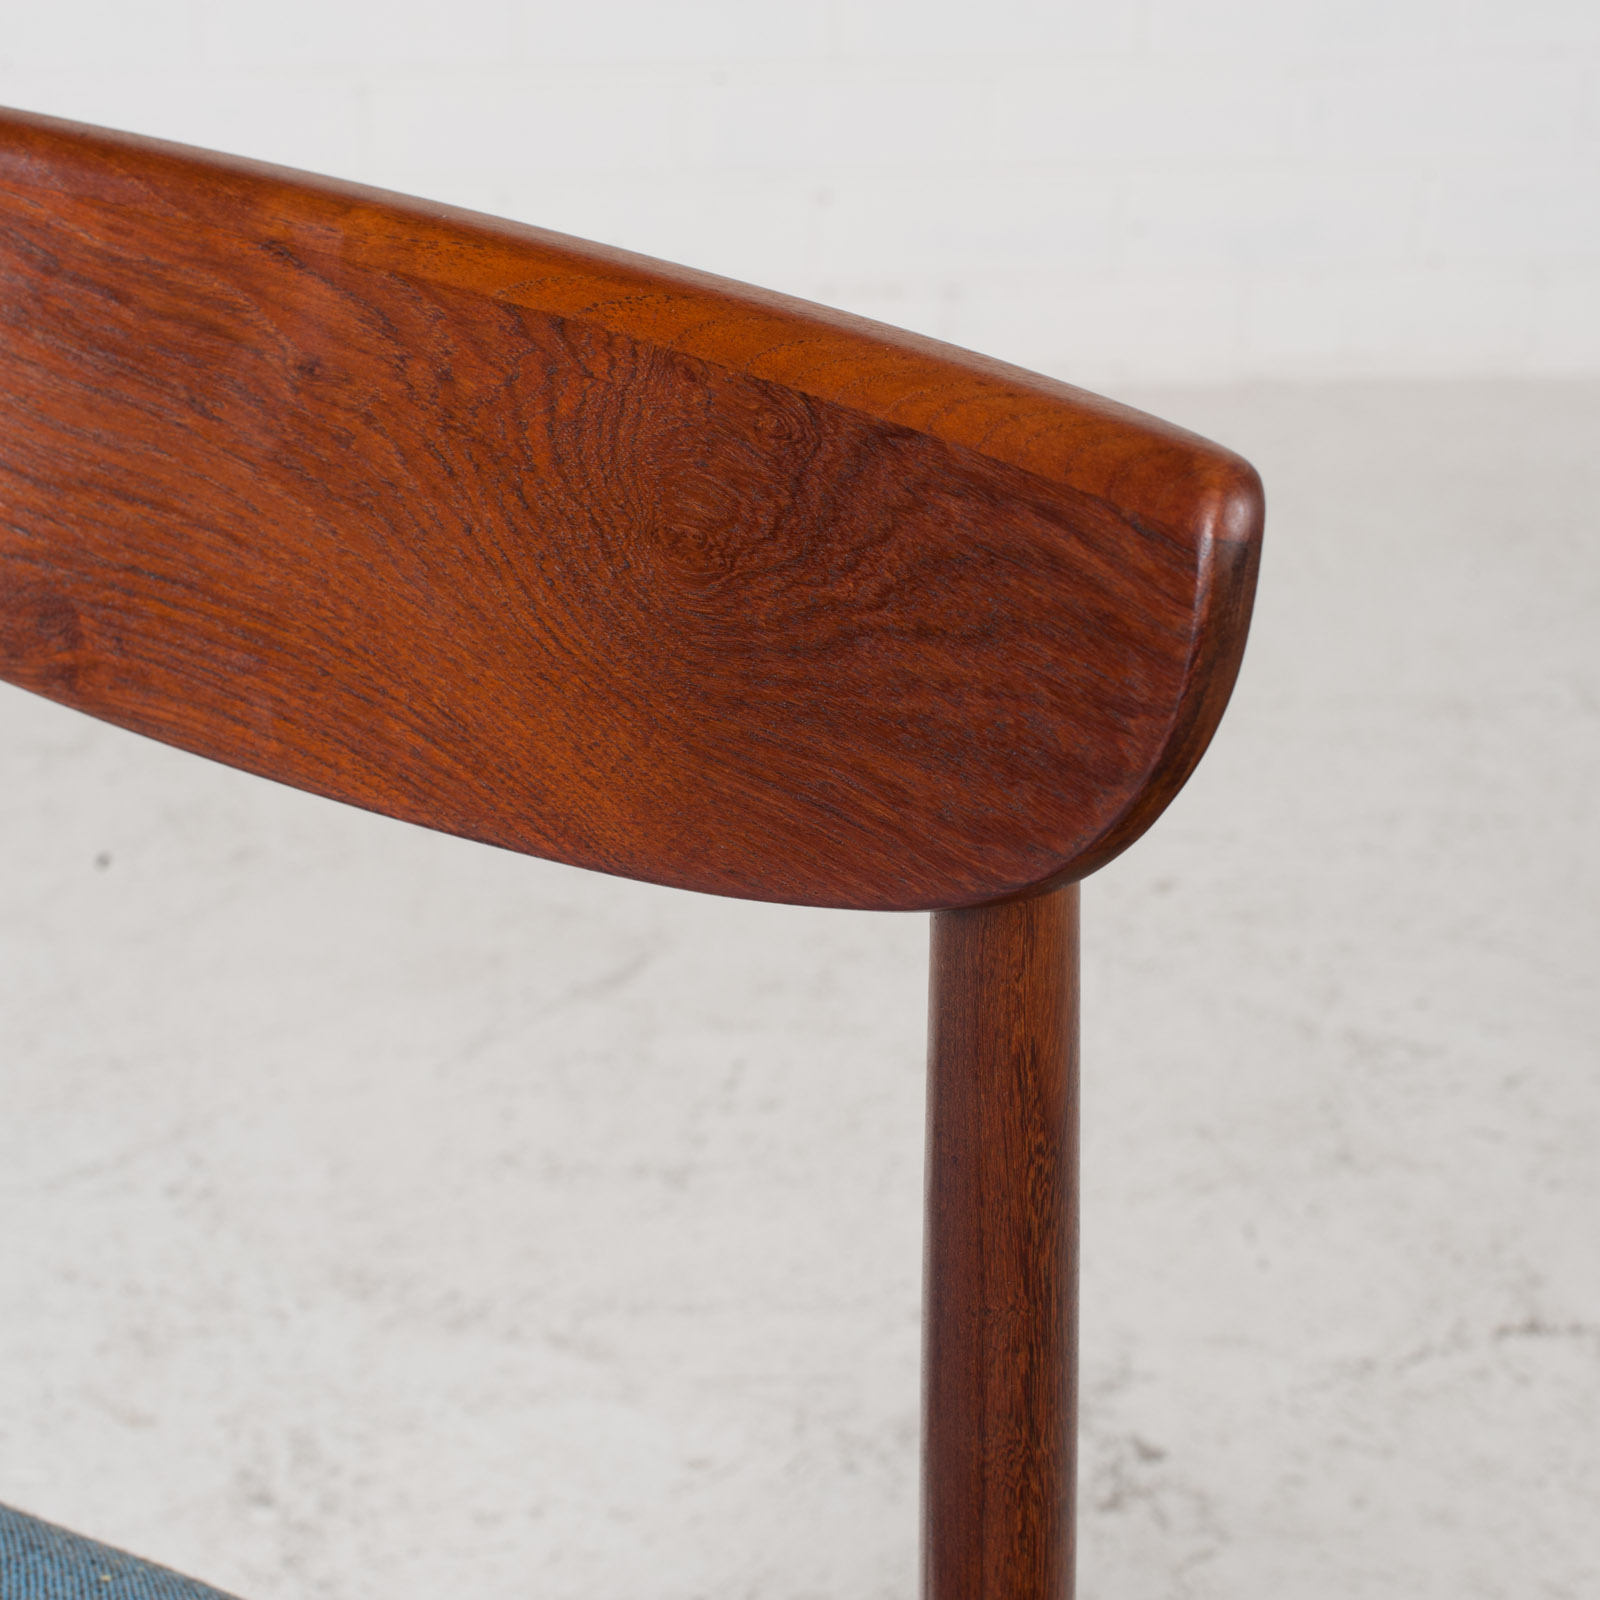 Set Of 4 Curved Lip Dining Chairs In Teak 1960s Denmark 09